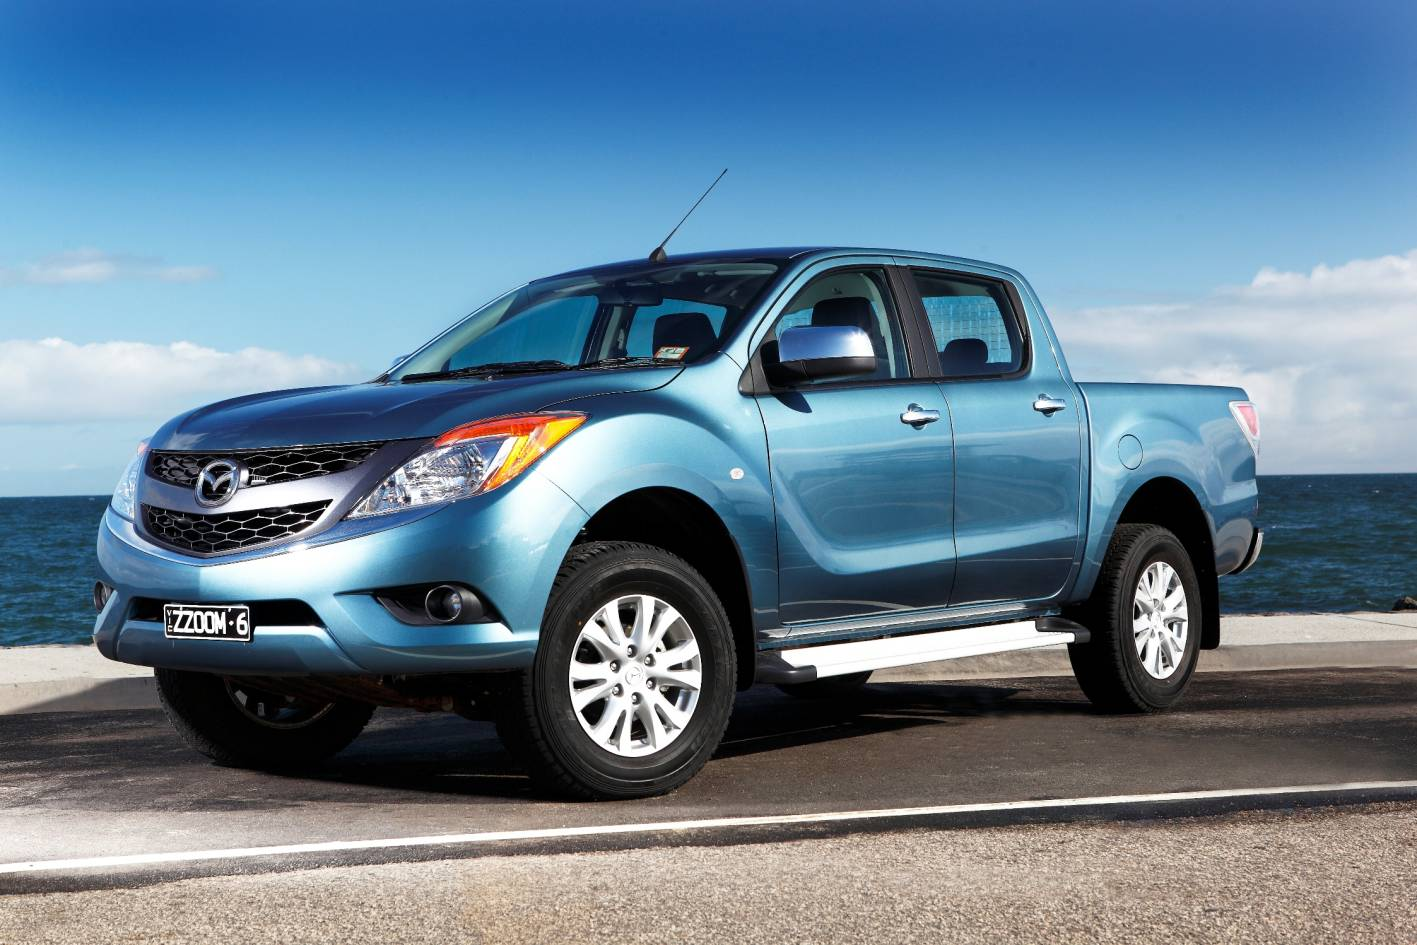 A match winner from Mazda, the BT-50 4x4 is a must drive. All BT-50 models have the classy KODOS Mazda design exterior that fashionably sets it apart from other utes on the road.